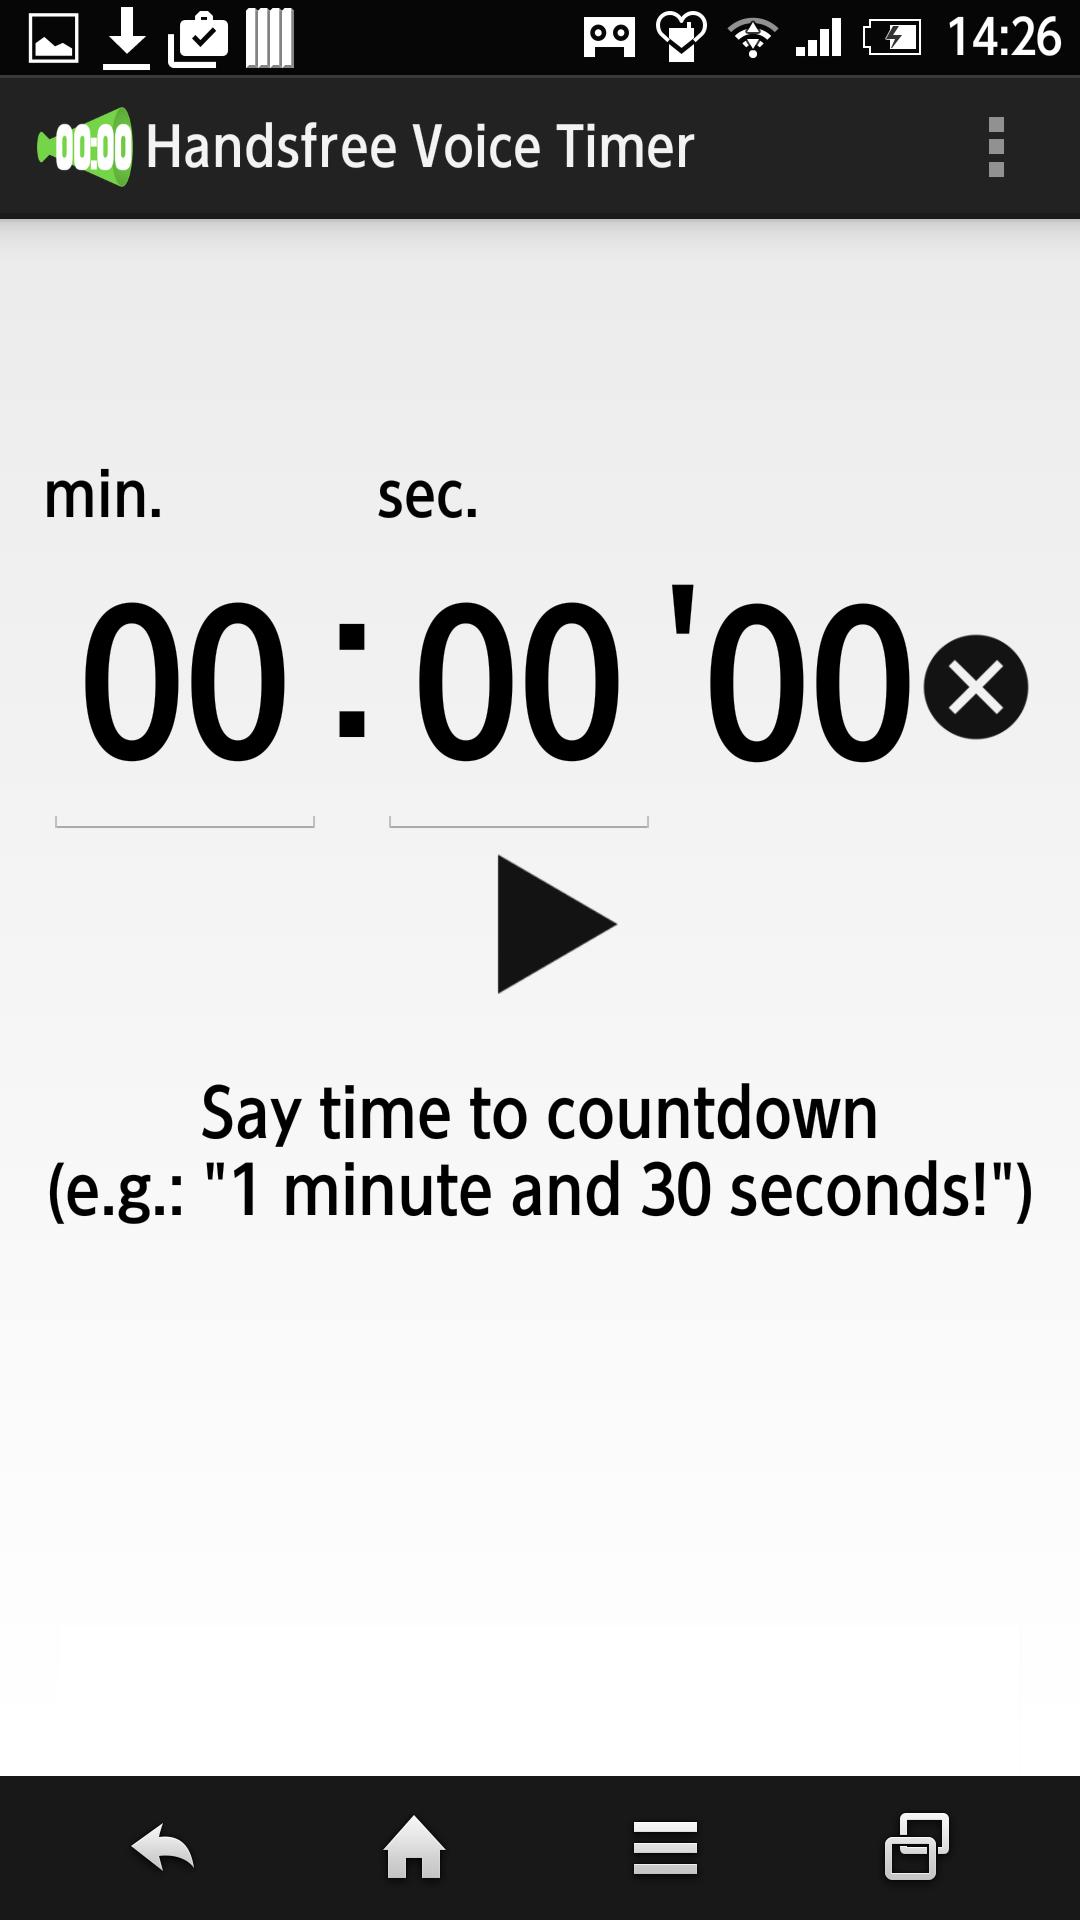 Handsfree Voice Timer for Android - APK Download